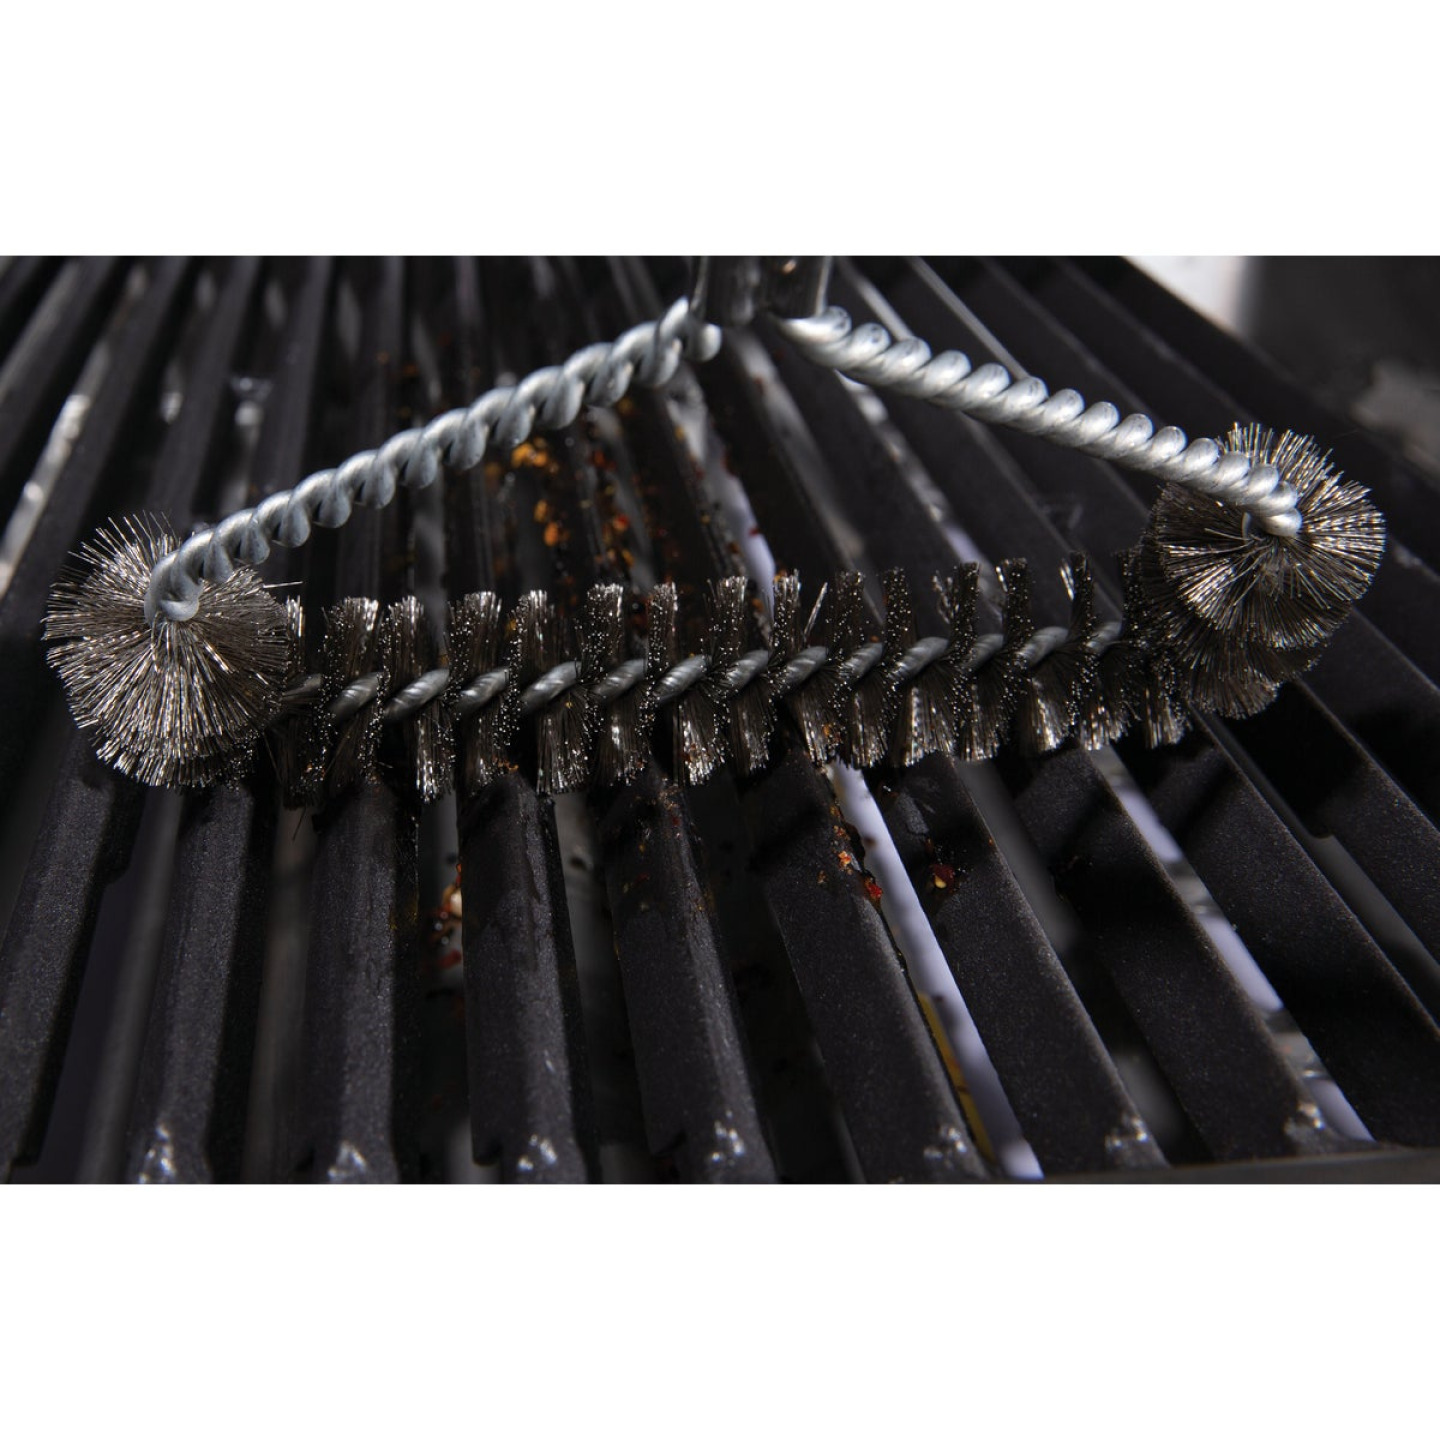 Broil King 18.9 In. Stainless Steel Bristles Tri-HeadGrill Cleaning Brush Image 4